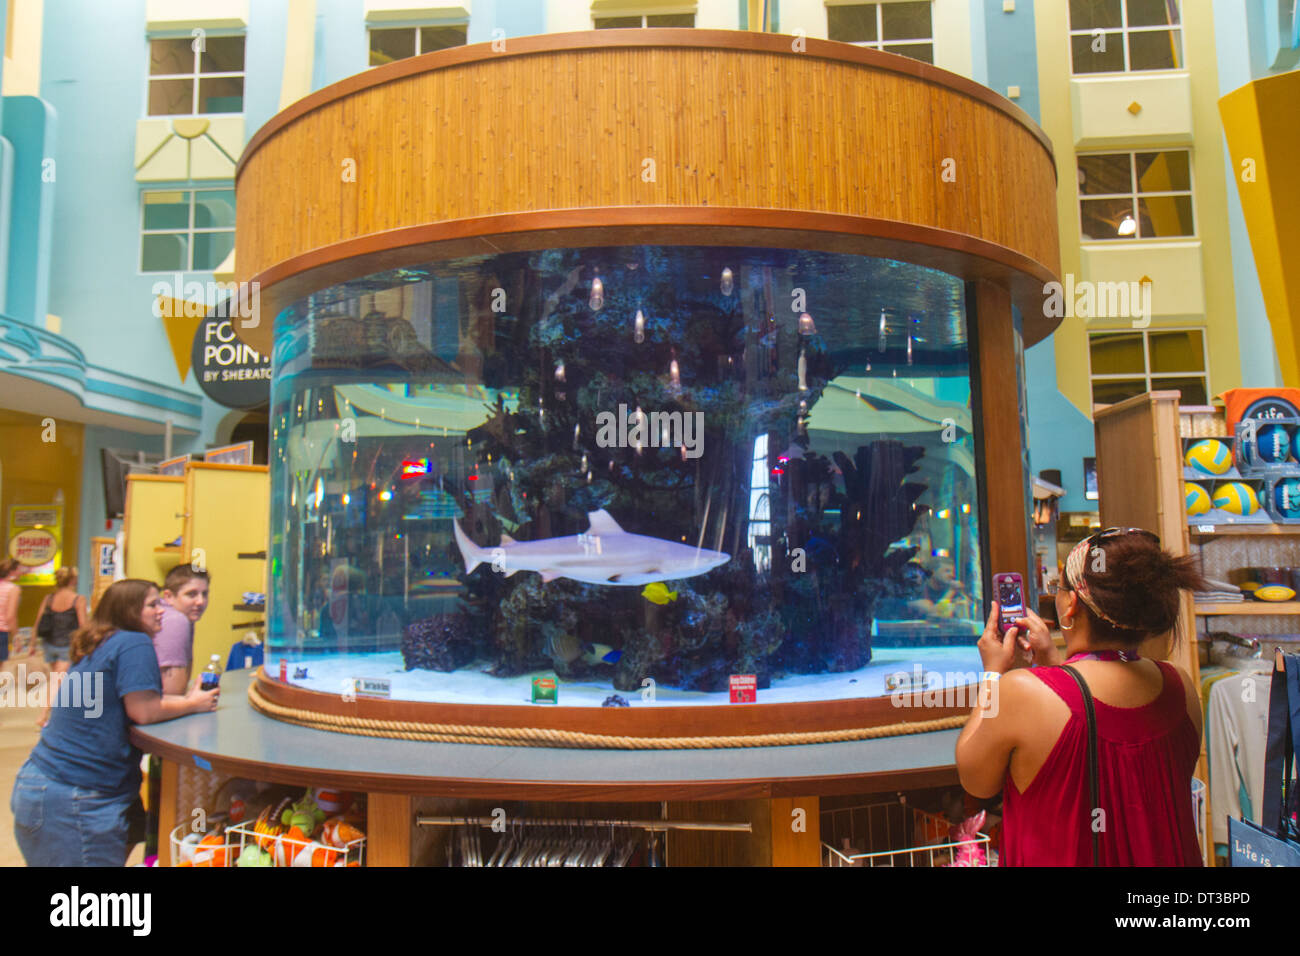 COCOA BEACH SURF COMPANY HAS EVERYTHING FOR FUN IN THE SUN And the Shark Pit Bar & Grill with it's gallon Shark & Exotic Fish Tank with it's hand fed sharks is where the locals eat (ask the Sharks). Beach Rentals?Every kind of surfboard, bodyboard, beach umbrellas, beach .